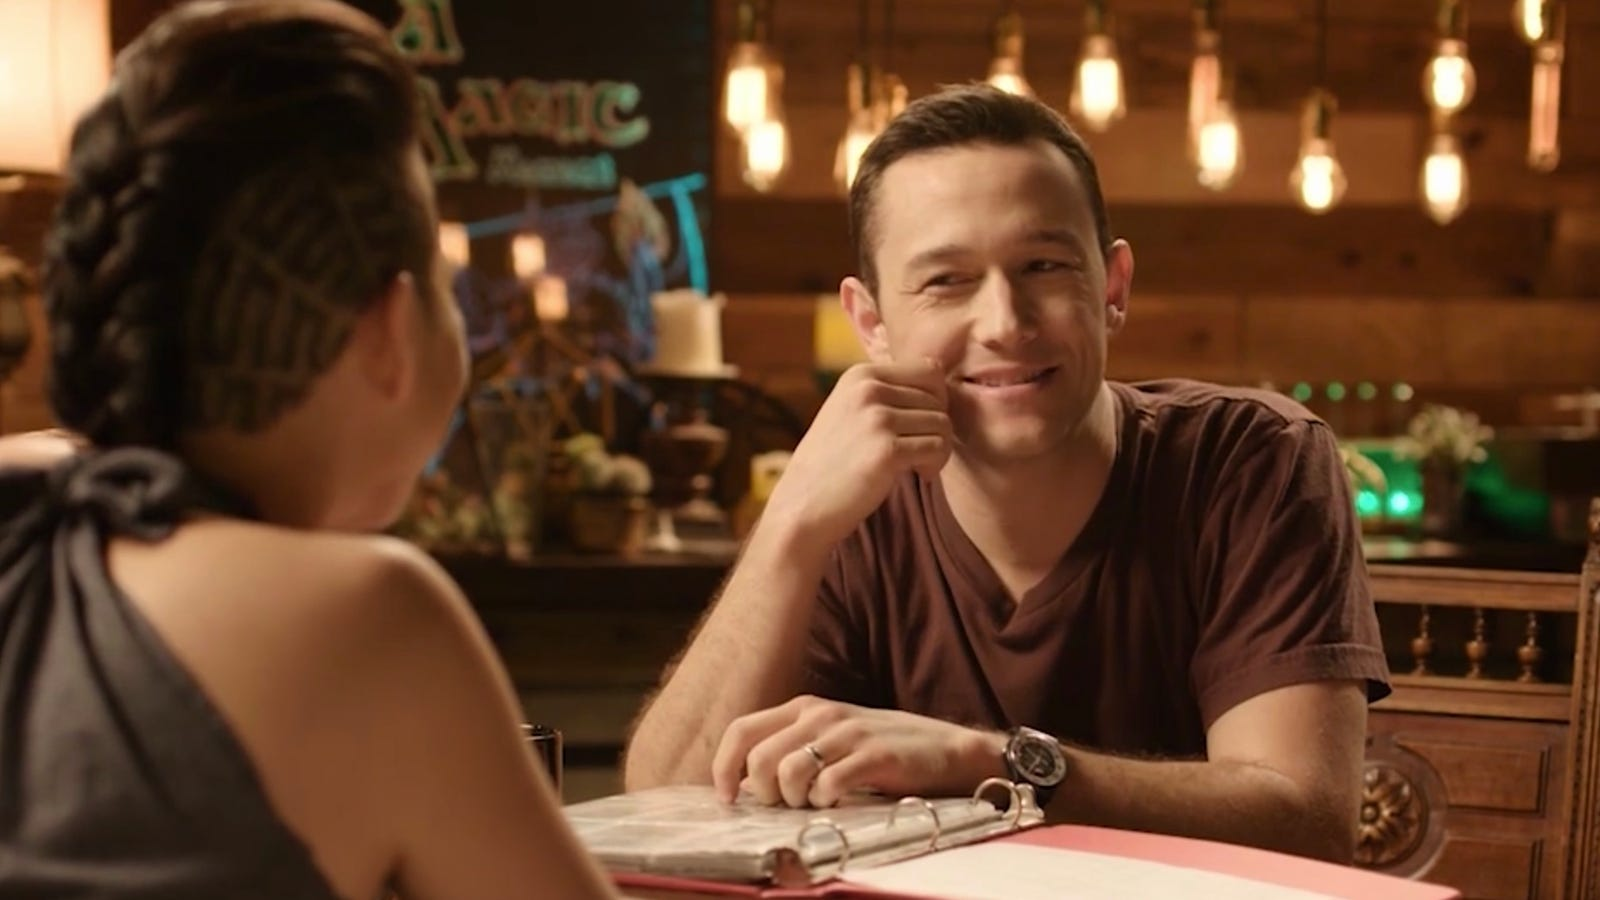 Joseph Gordon-Levitt Geeking Out About Magic: The Gathering Is Nothing Short of Delightful